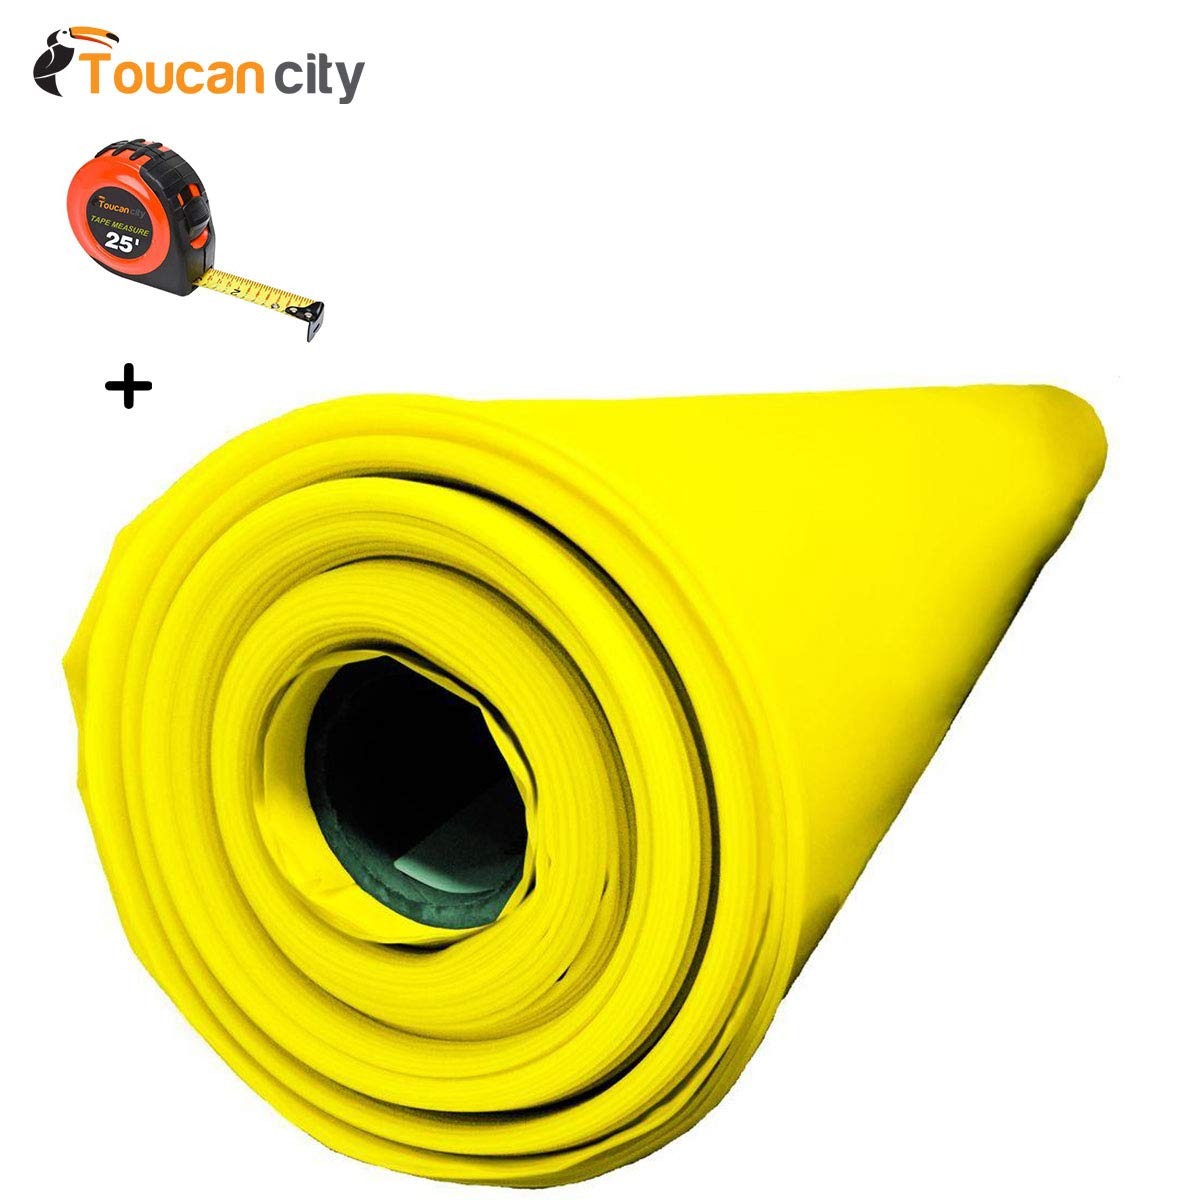 Toucan City Tape Measure and Husky 14 ft. x 210 ft. x 10 mil Yellow Guard Vapor Barrier CFYG1014-210Y by Toucan City (Image #1)